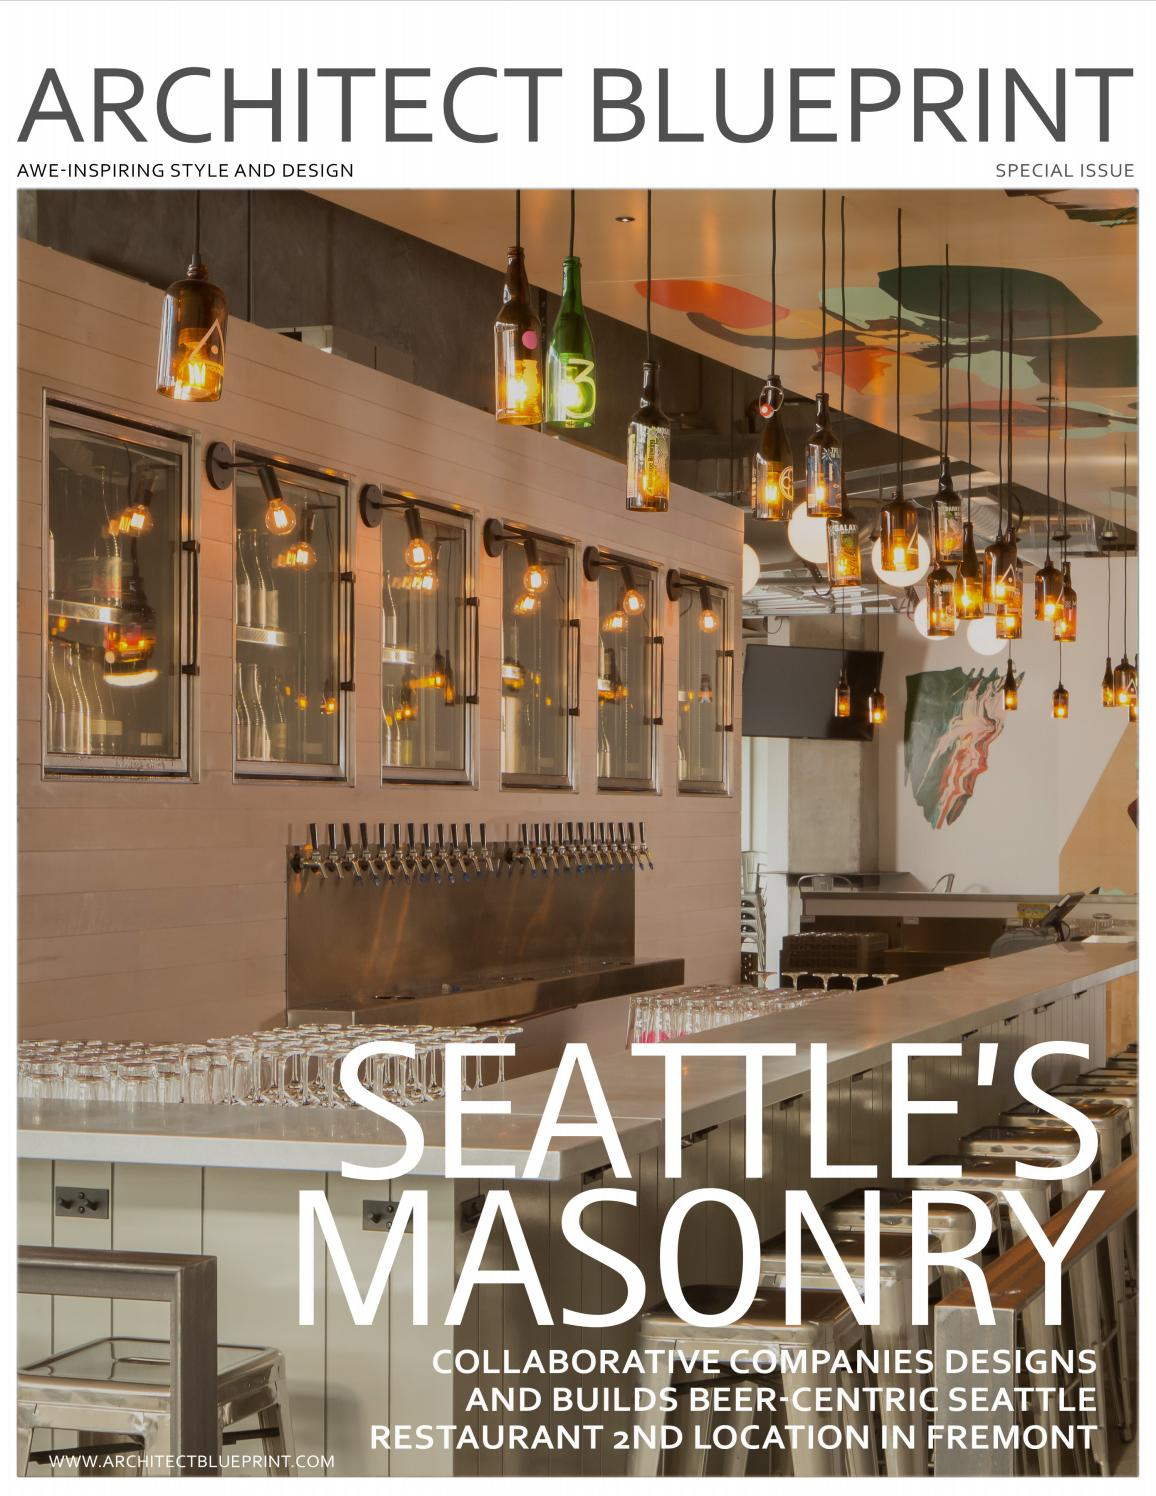 Masonry Companies Seattle S Masonry Collaborative Companies Designs And Builds Beer